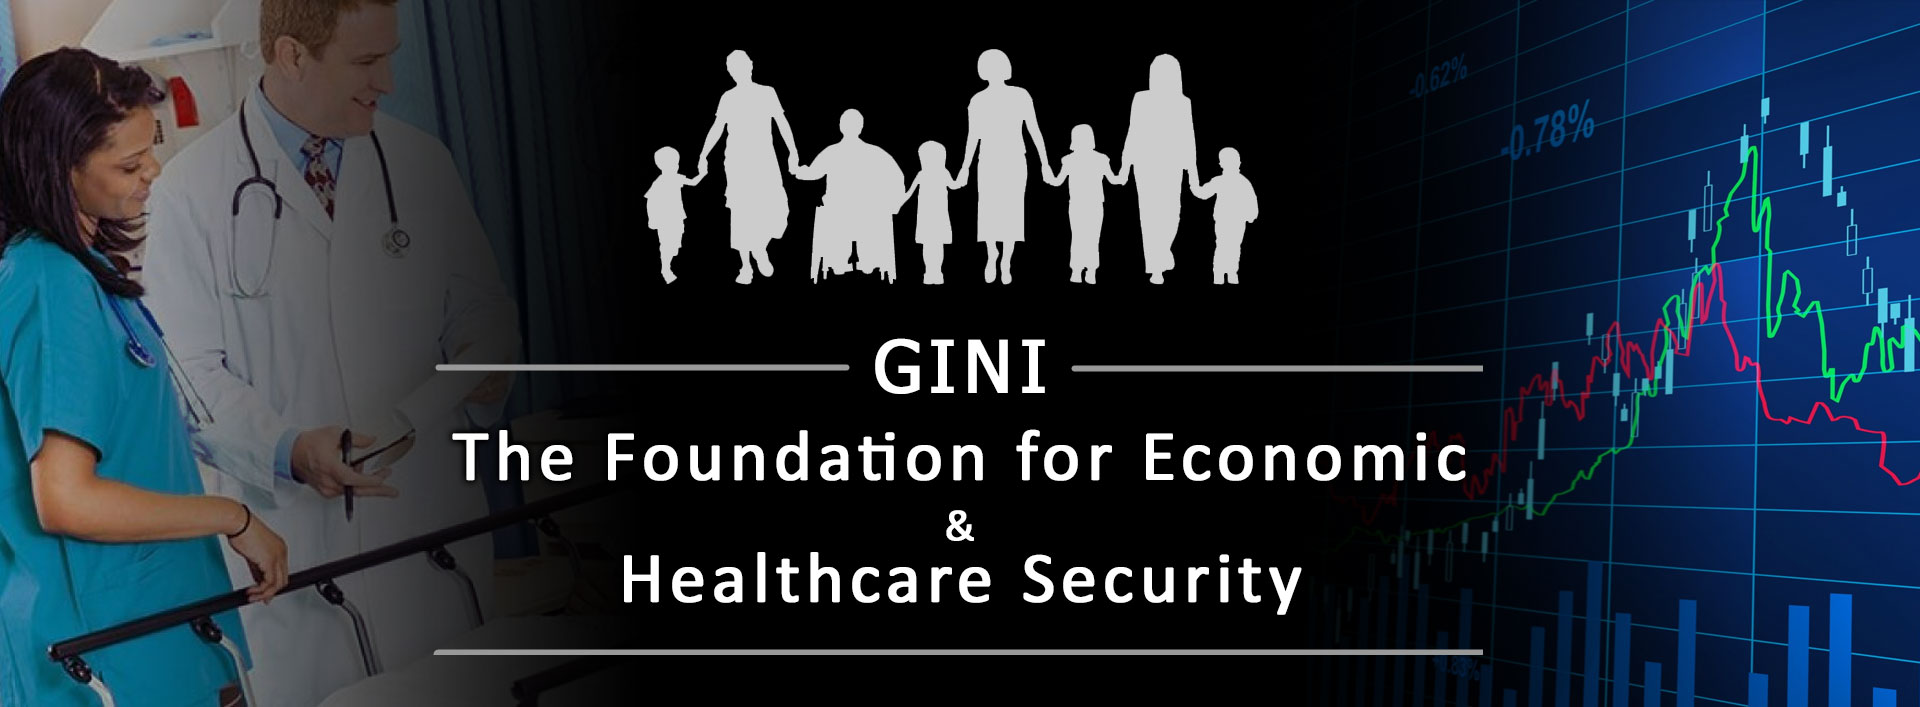 GINI: The Foundation for Economic & Healthcare Security